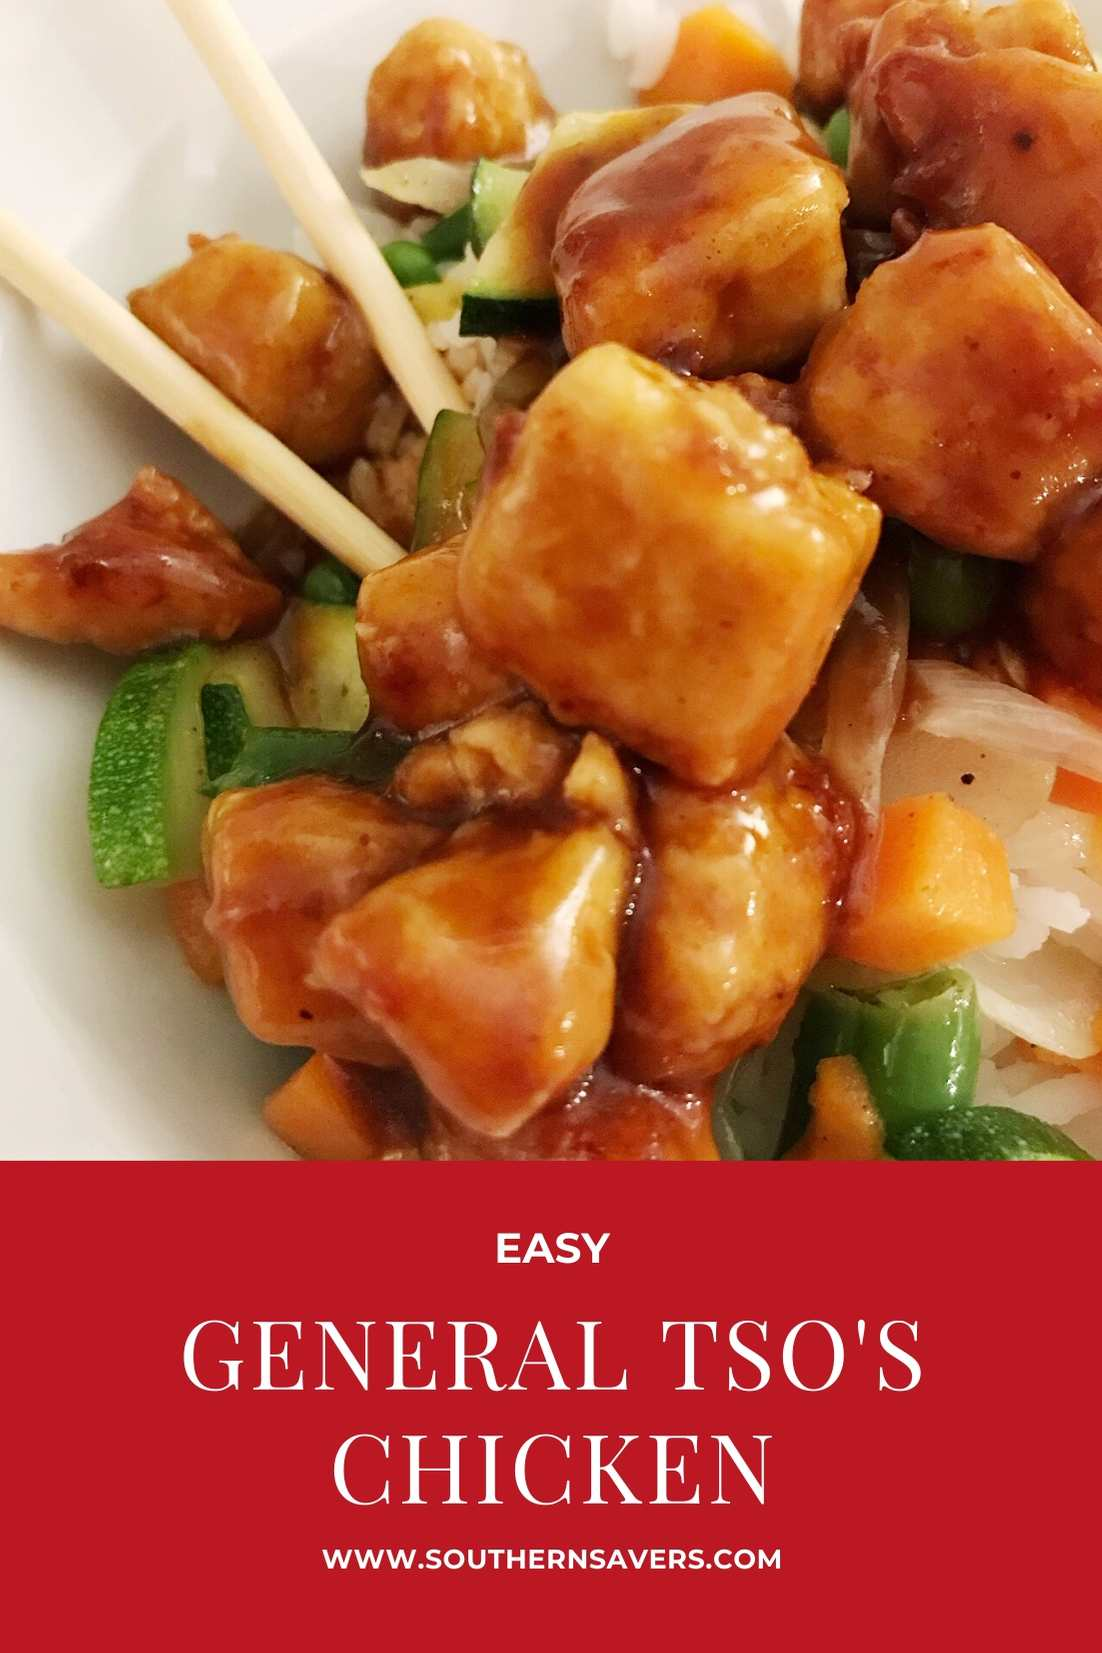 easy general tso's chicken pinterest